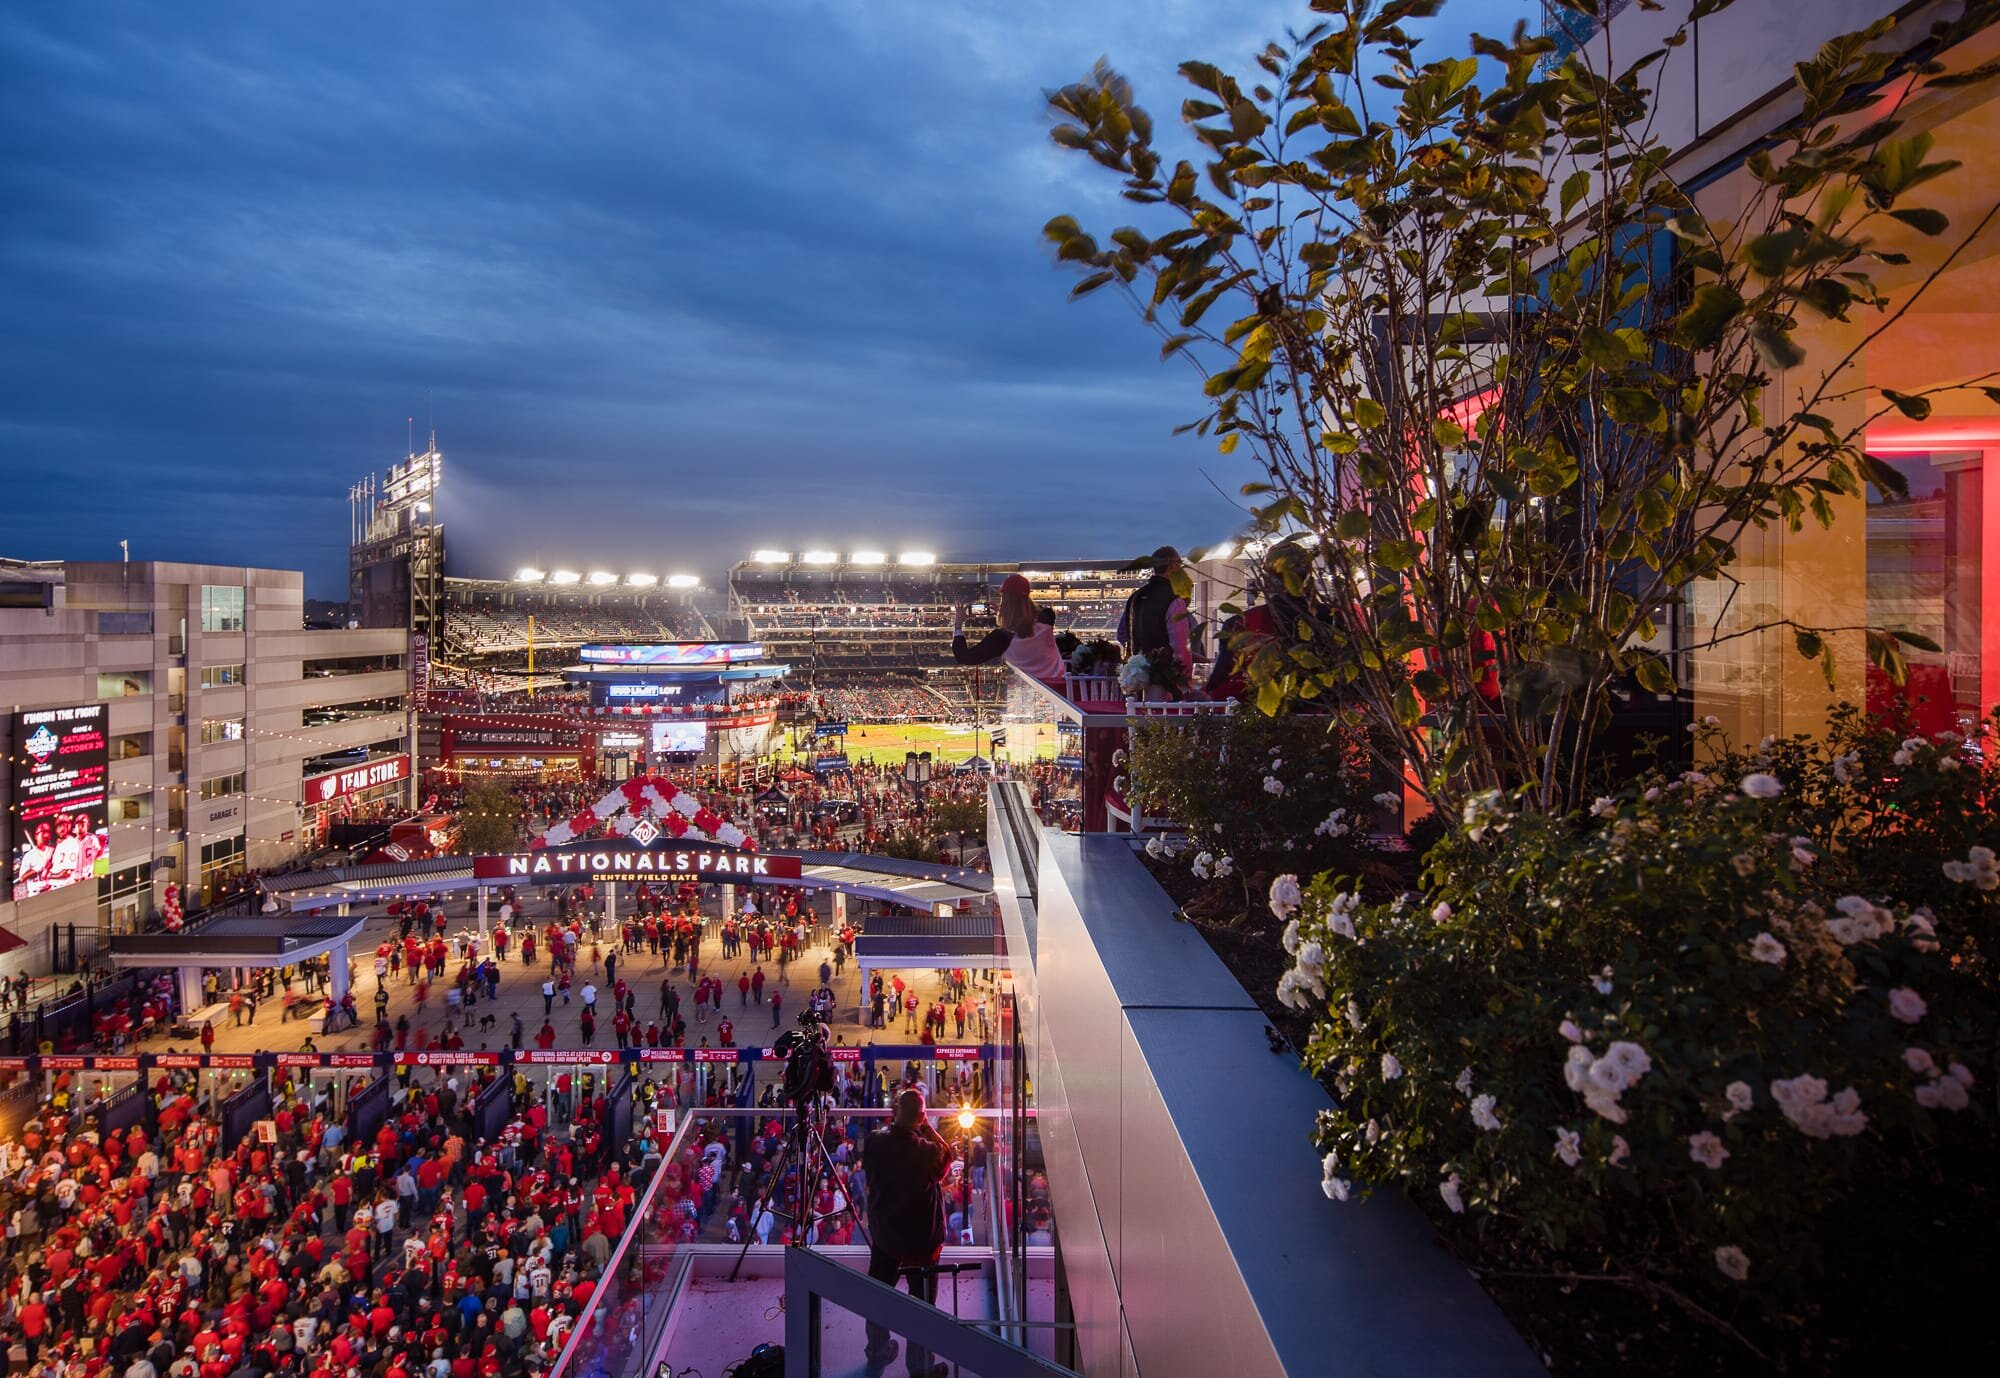 Gorgeous view from the West Half development by JBG Smith during World Series in Washington